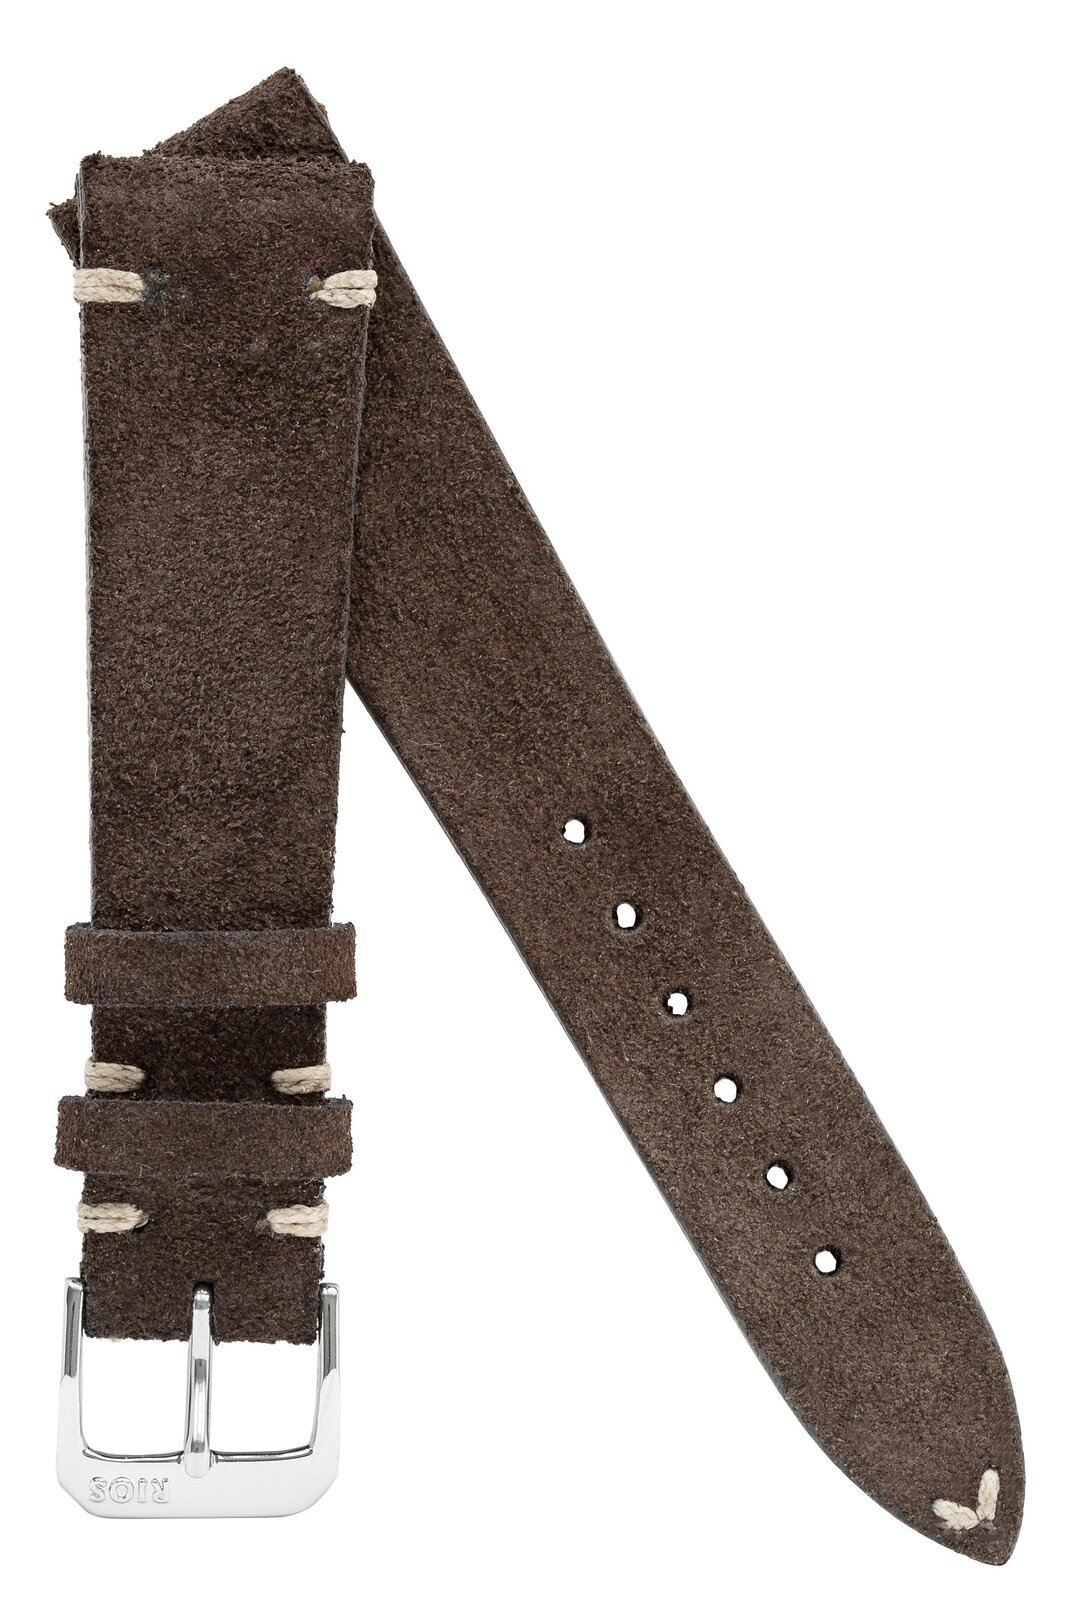 22mm Rios1931 HUDSON Genuine Suede Leather Watch Strap in MOCHA